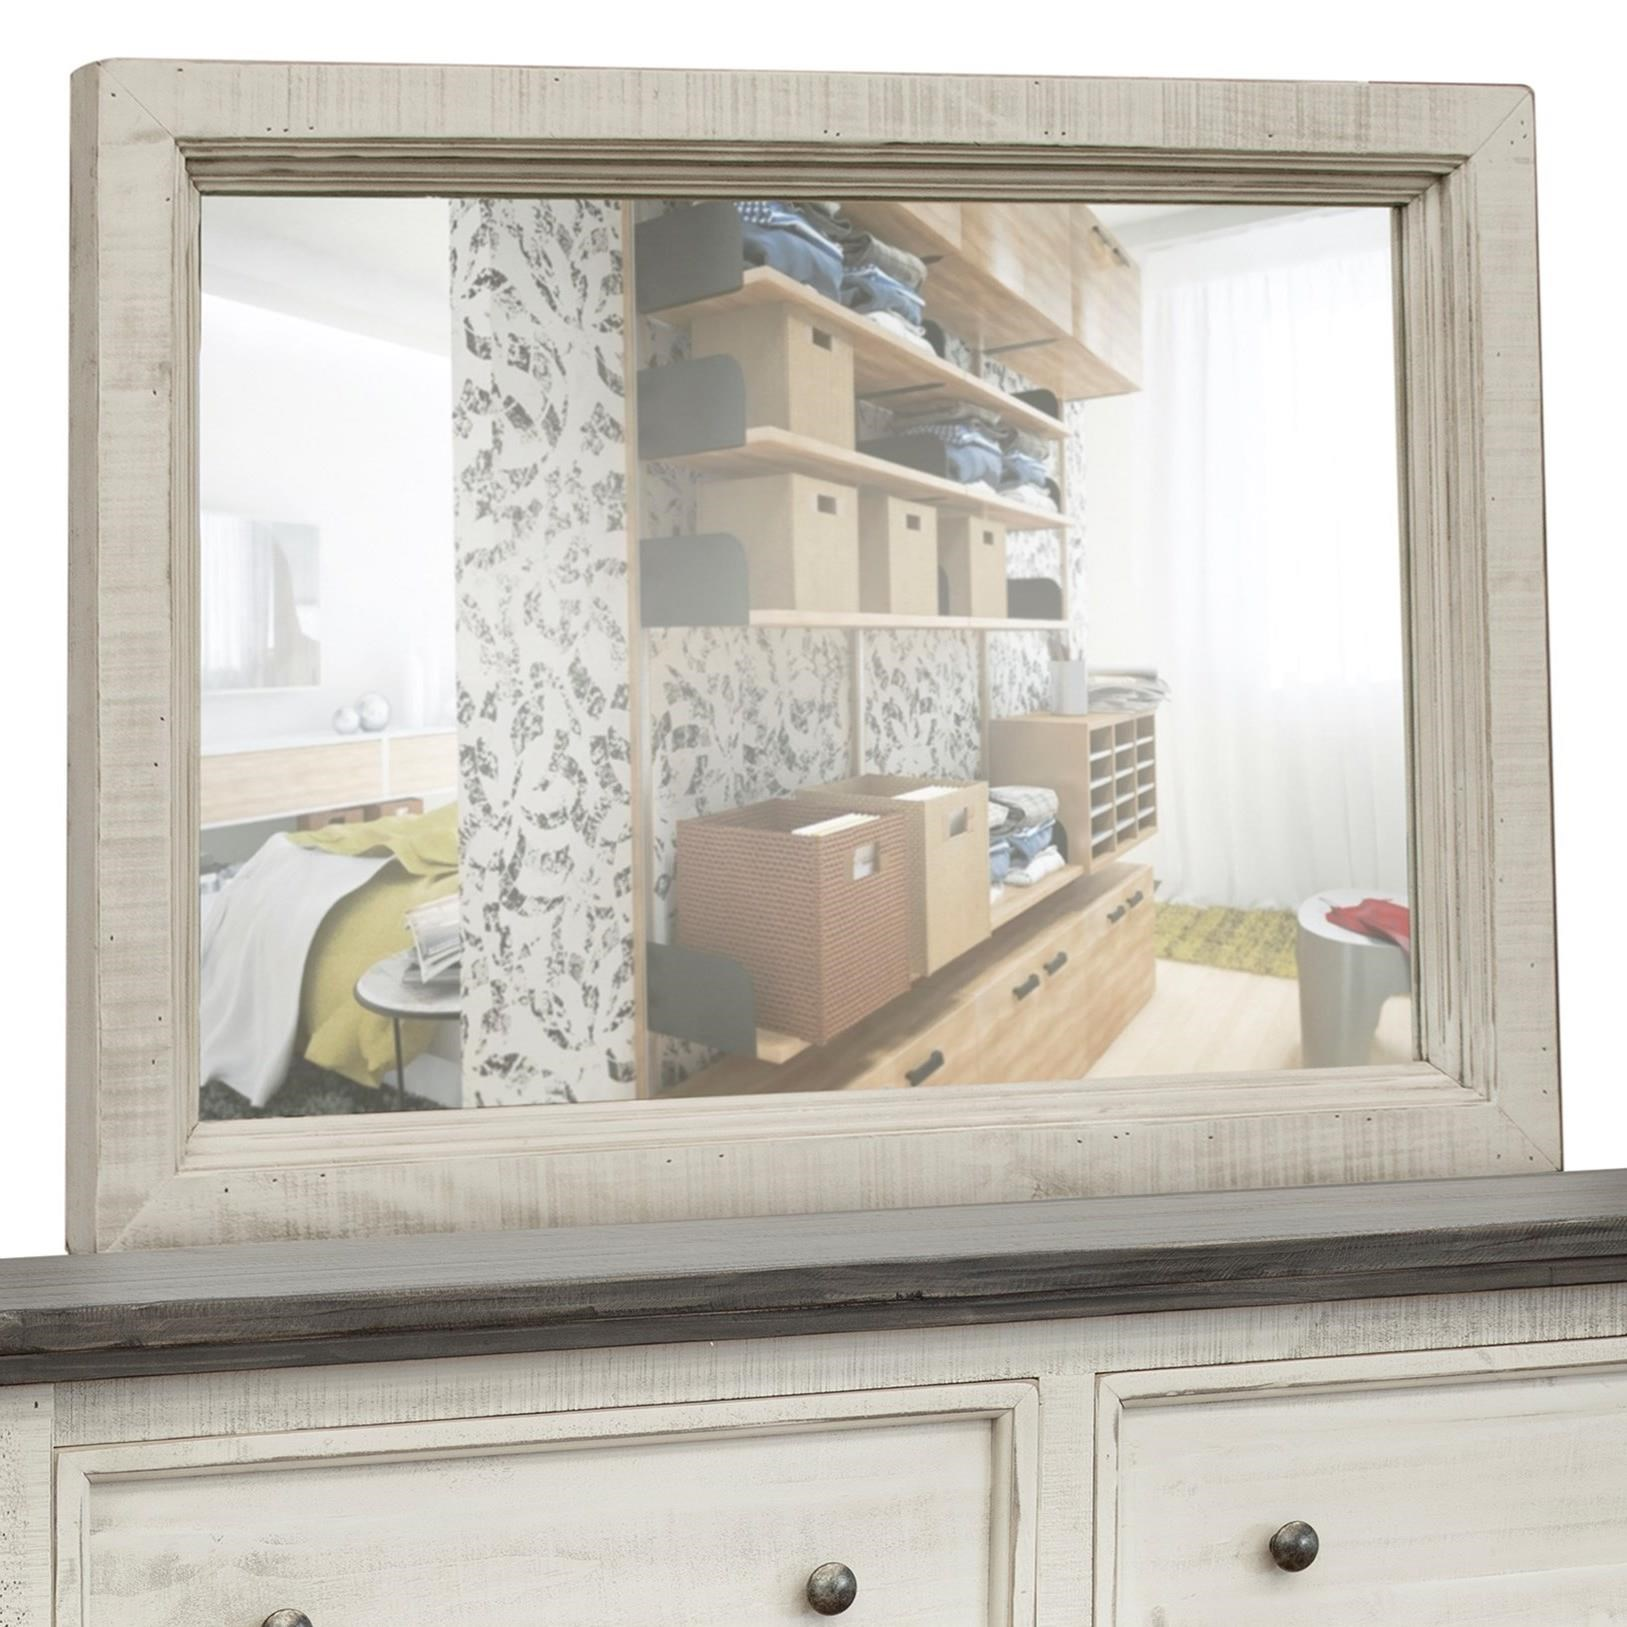 Stone Dresser Mirror by International Furniture Direct at Furniture Superstore - Rochester, MN